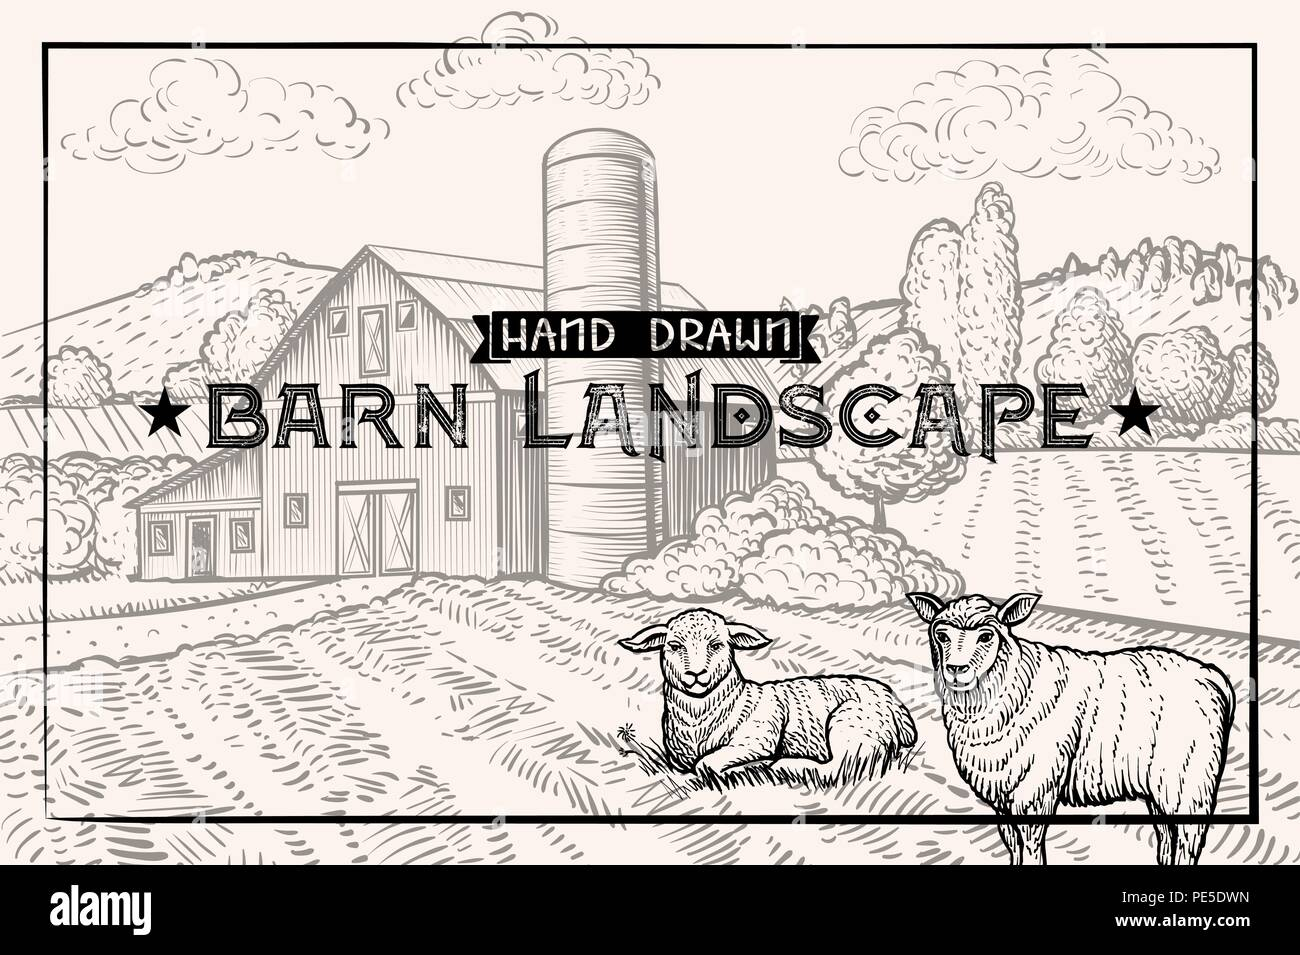 Vintage barn landscape and Farm animals Lamb and Sheep. Textured Horizontal Poster Template. Retro styled Sketched Engraving vector illustration - Stock Vector